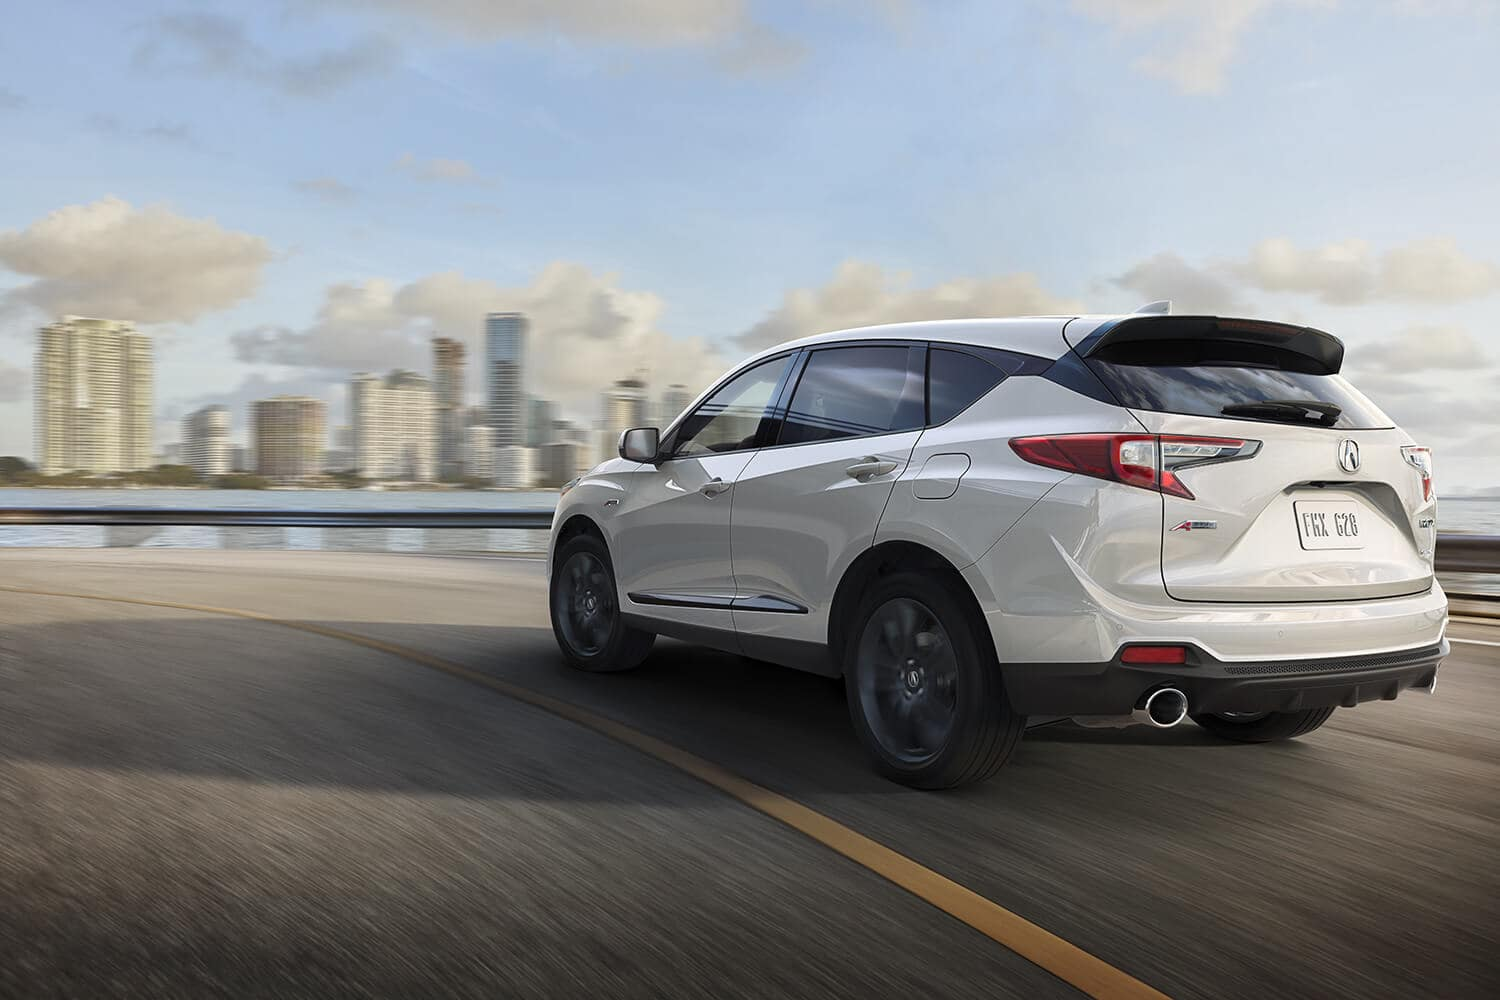 2019 Acura RDX Exterior Rear Angle Driver Side White